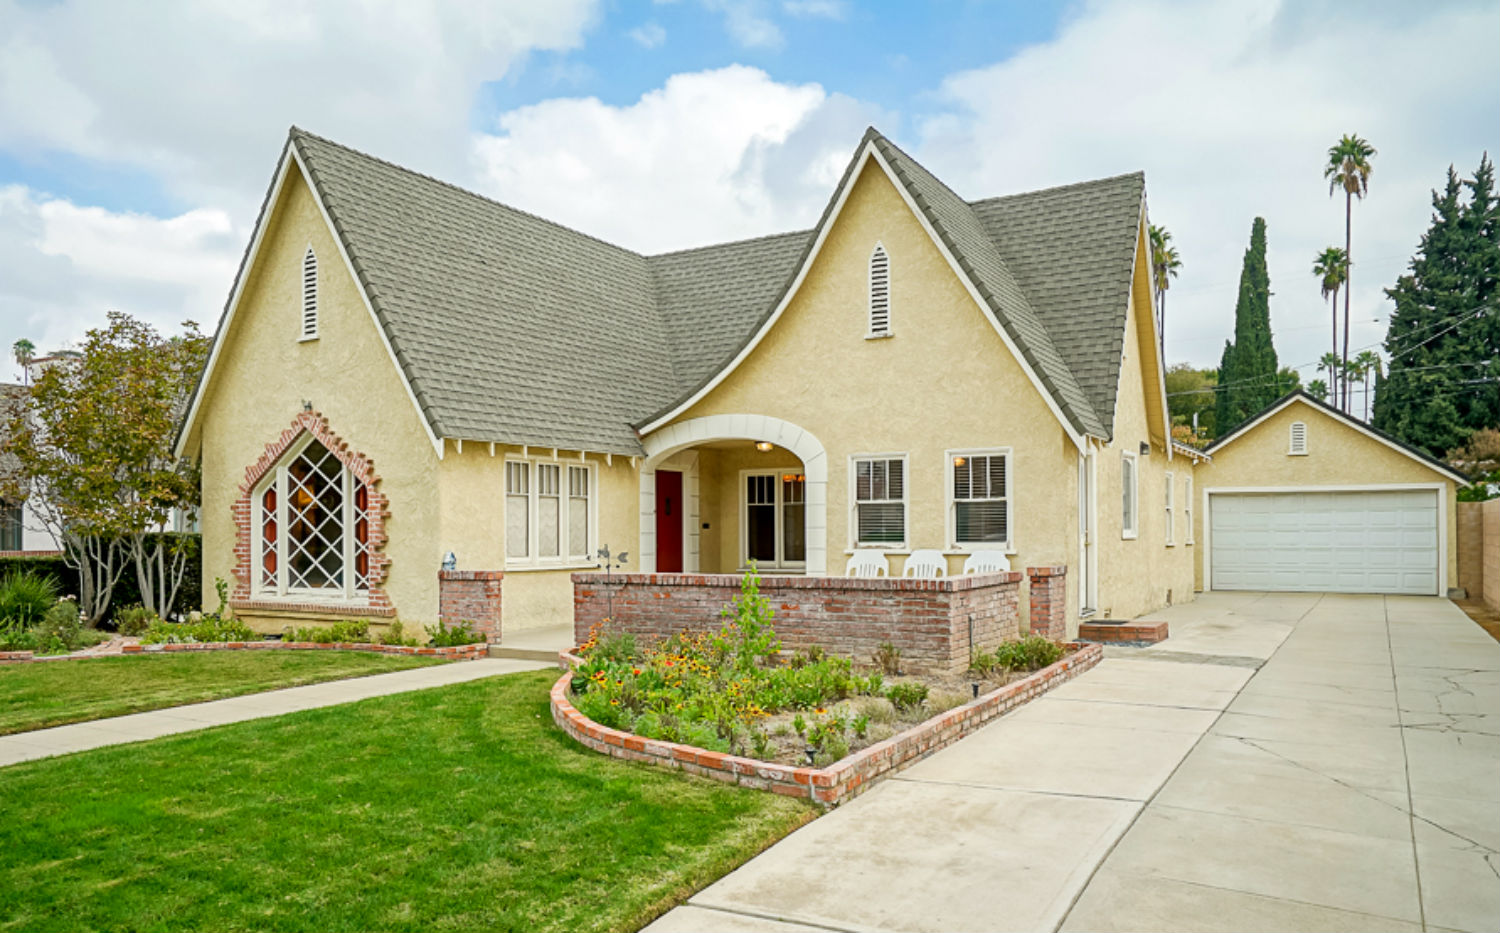 3543 Castle Reagh Pl, Riverside CA 92506 listed by THE SISTER TEAM